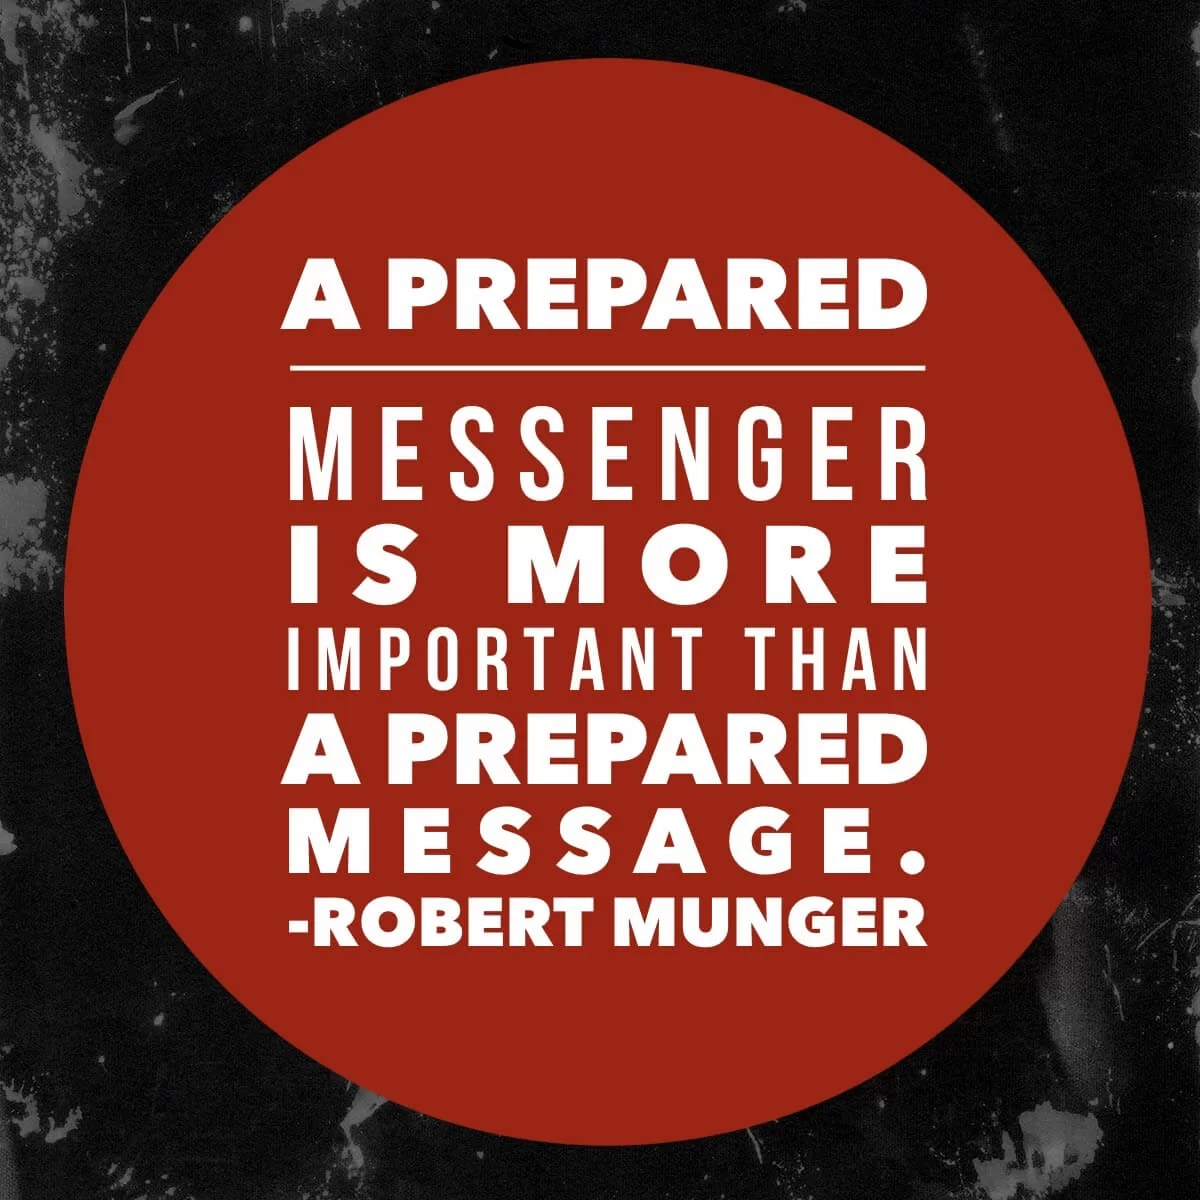 preaching quote robert munger